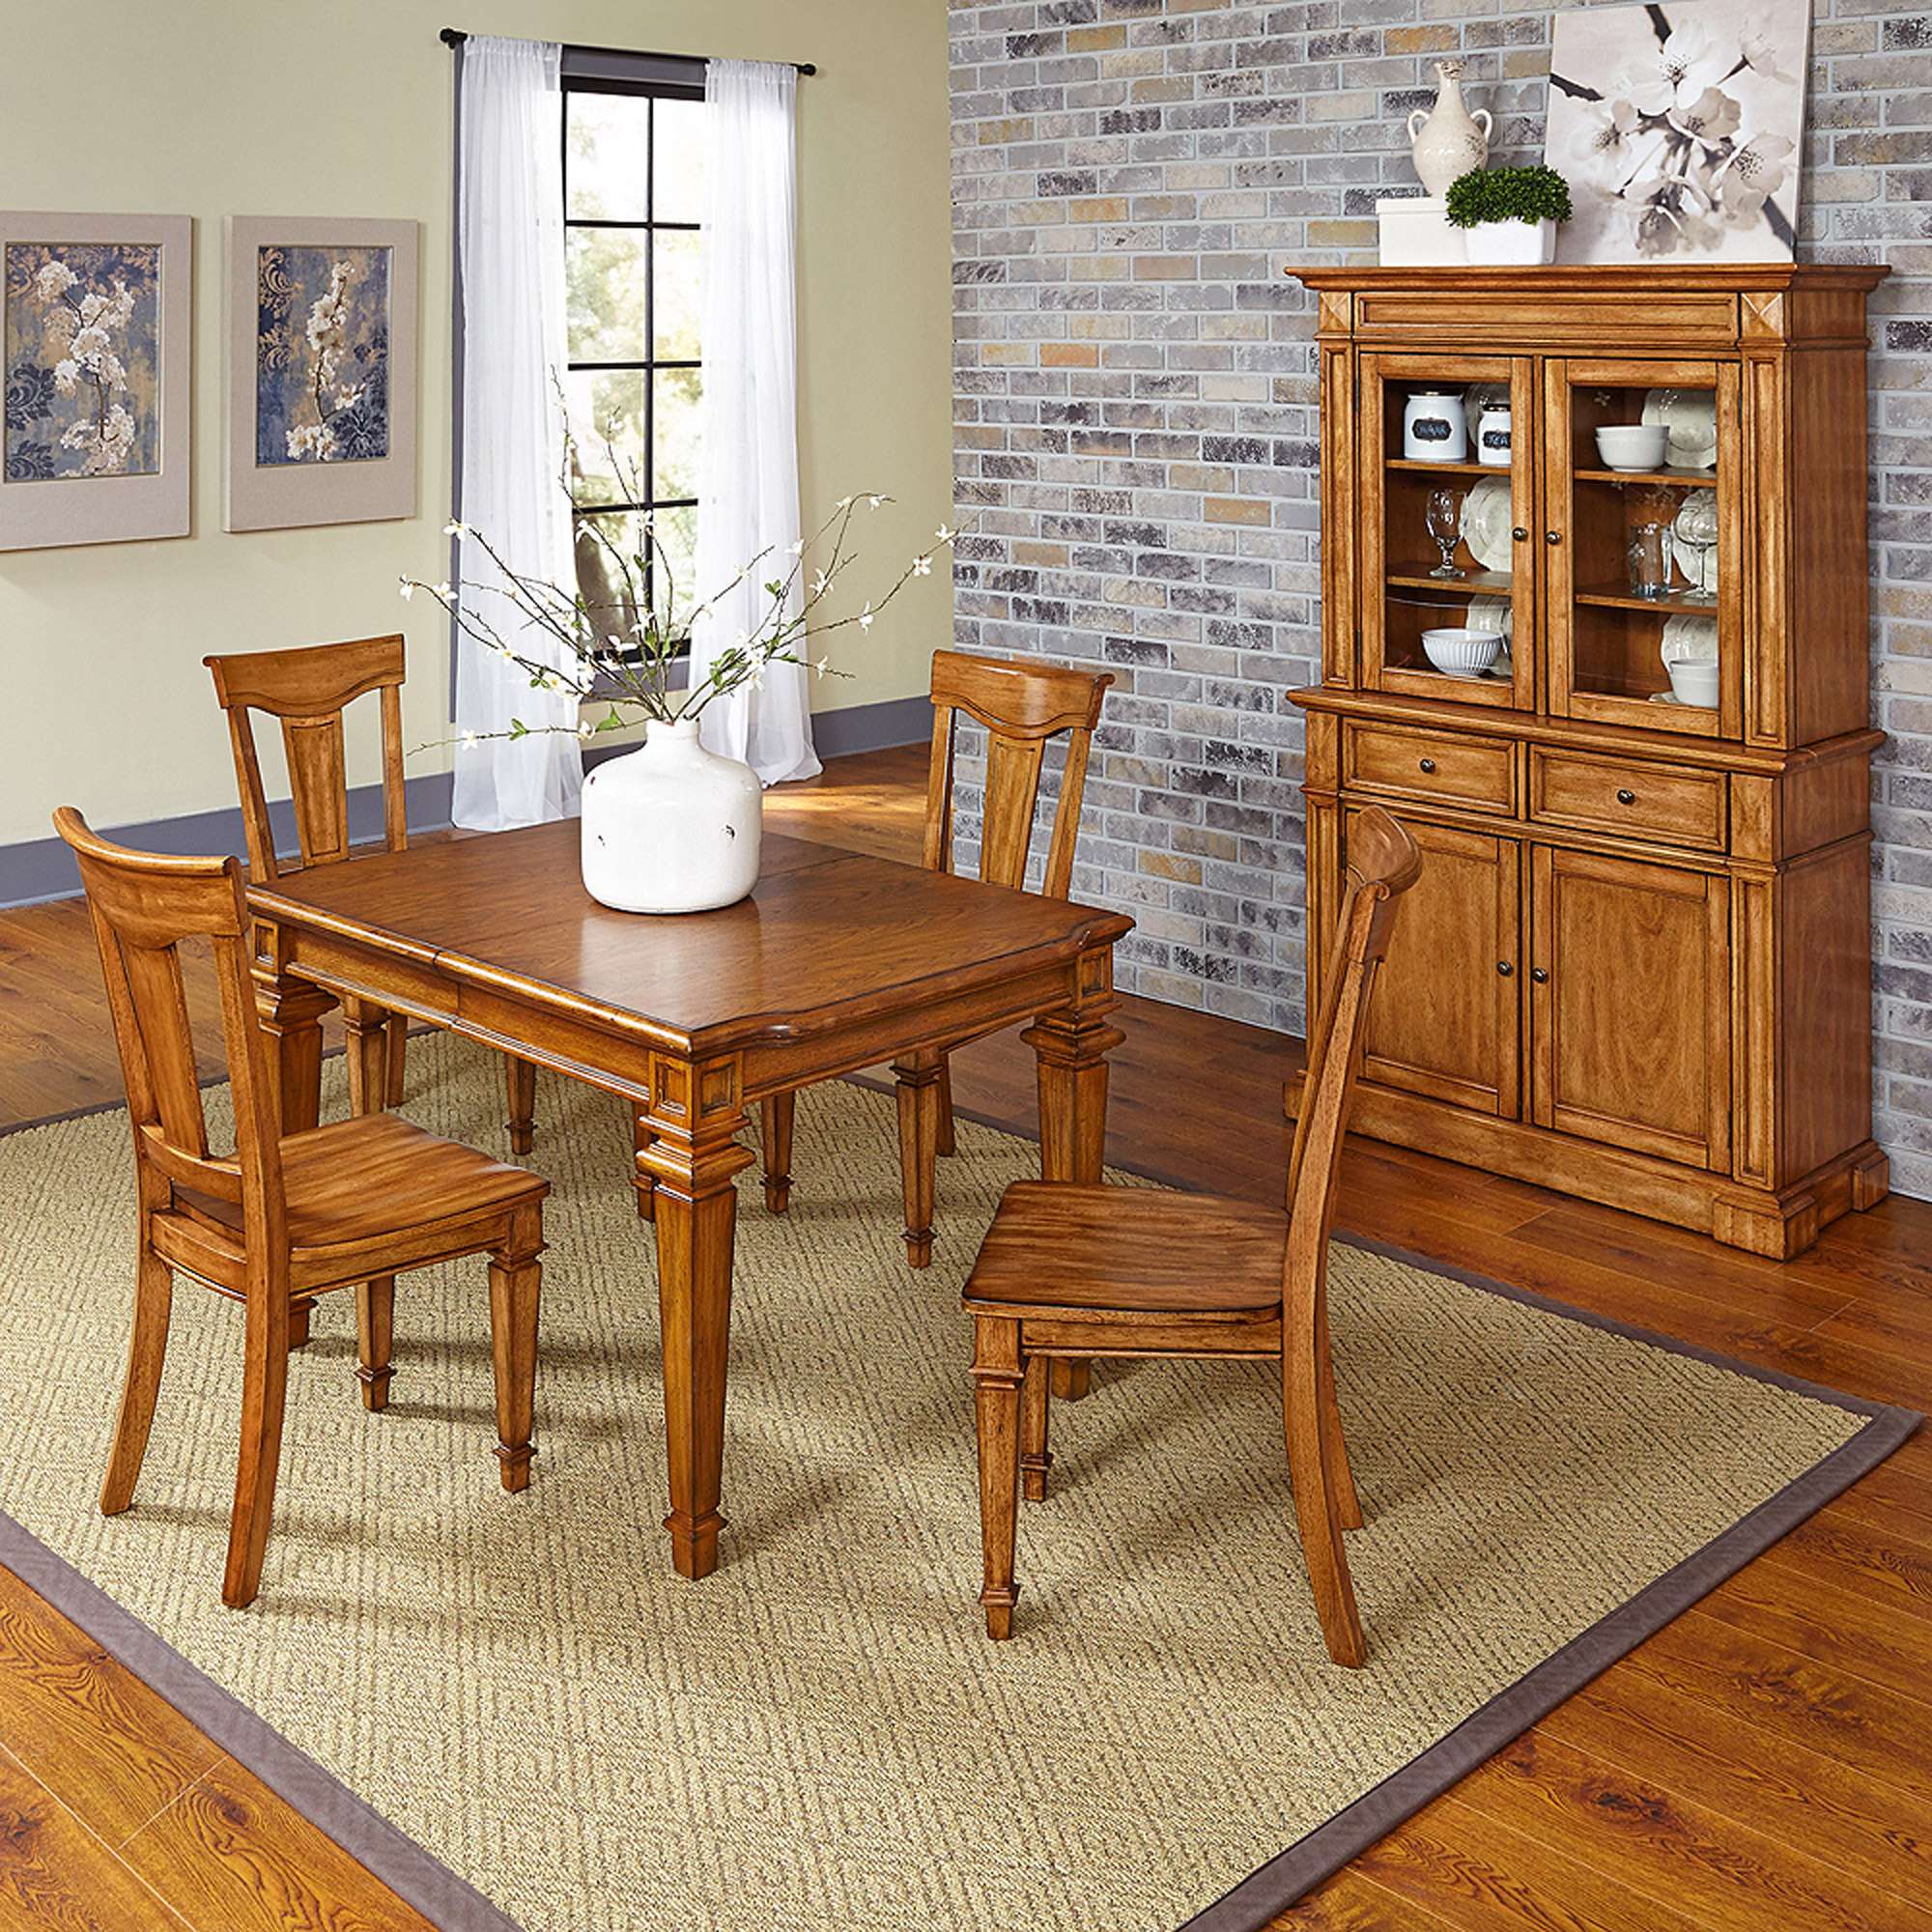 Home Styles Americana Kitchen & Dining Furniture Collection Distressed Oak Finish